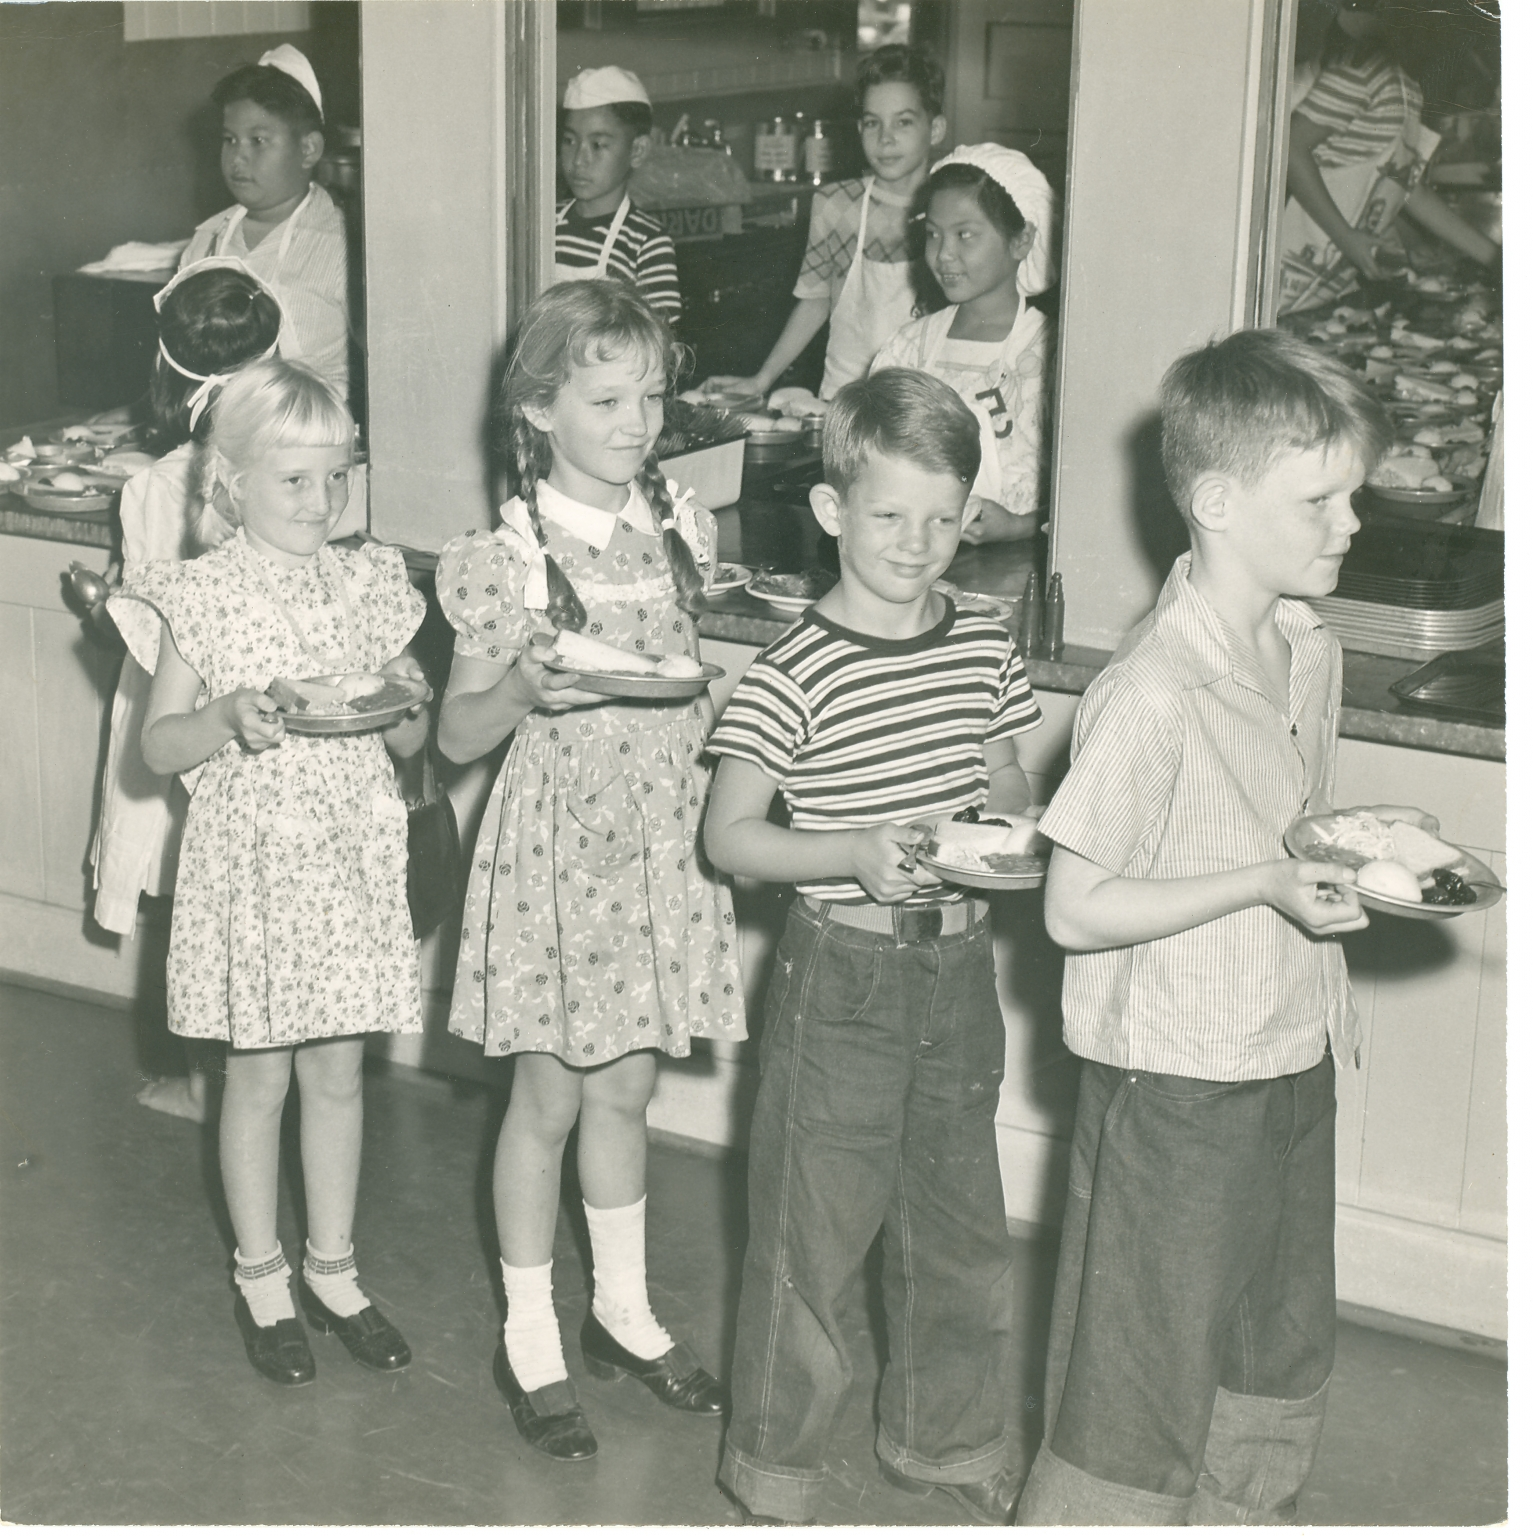 Thomas Jefferson Cafeteria 1947